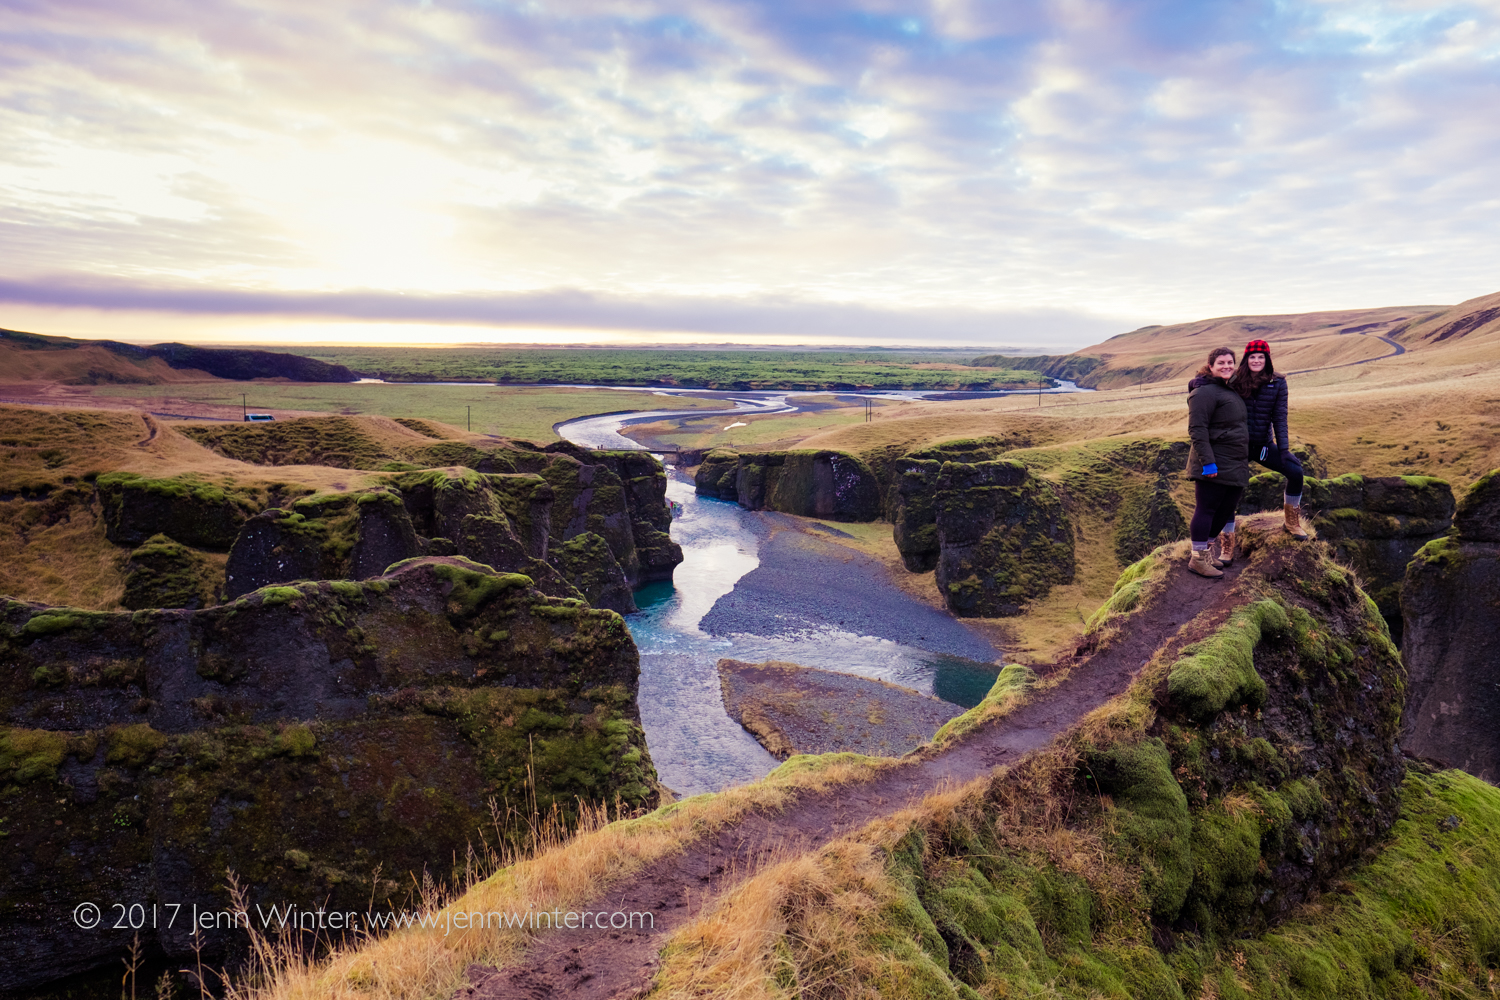 Iceland – 2 sisters, $20 bowls of soup & million dollar views